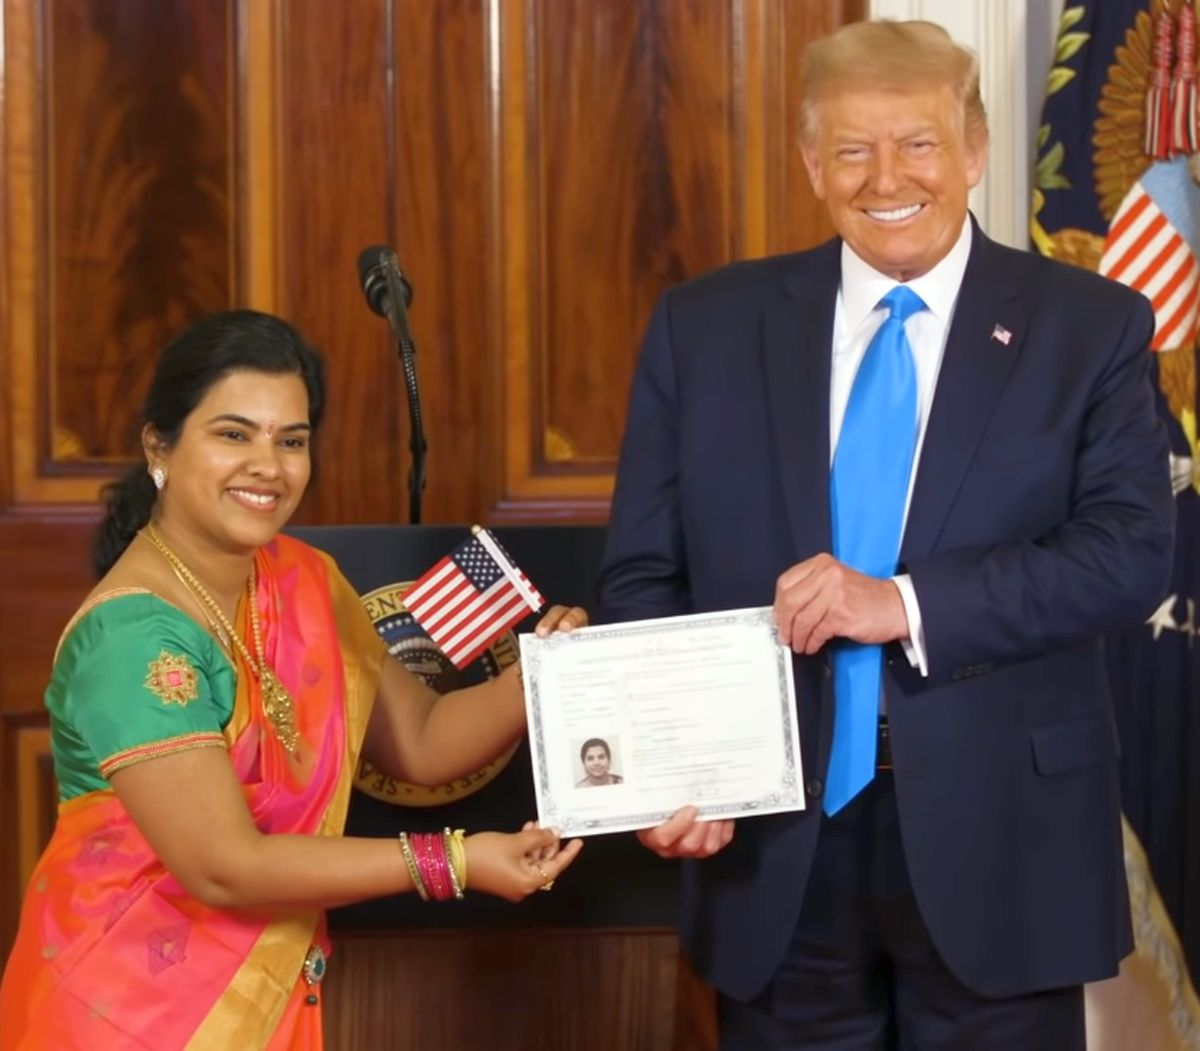 'Never dreamed of it': Indian who became US citizen